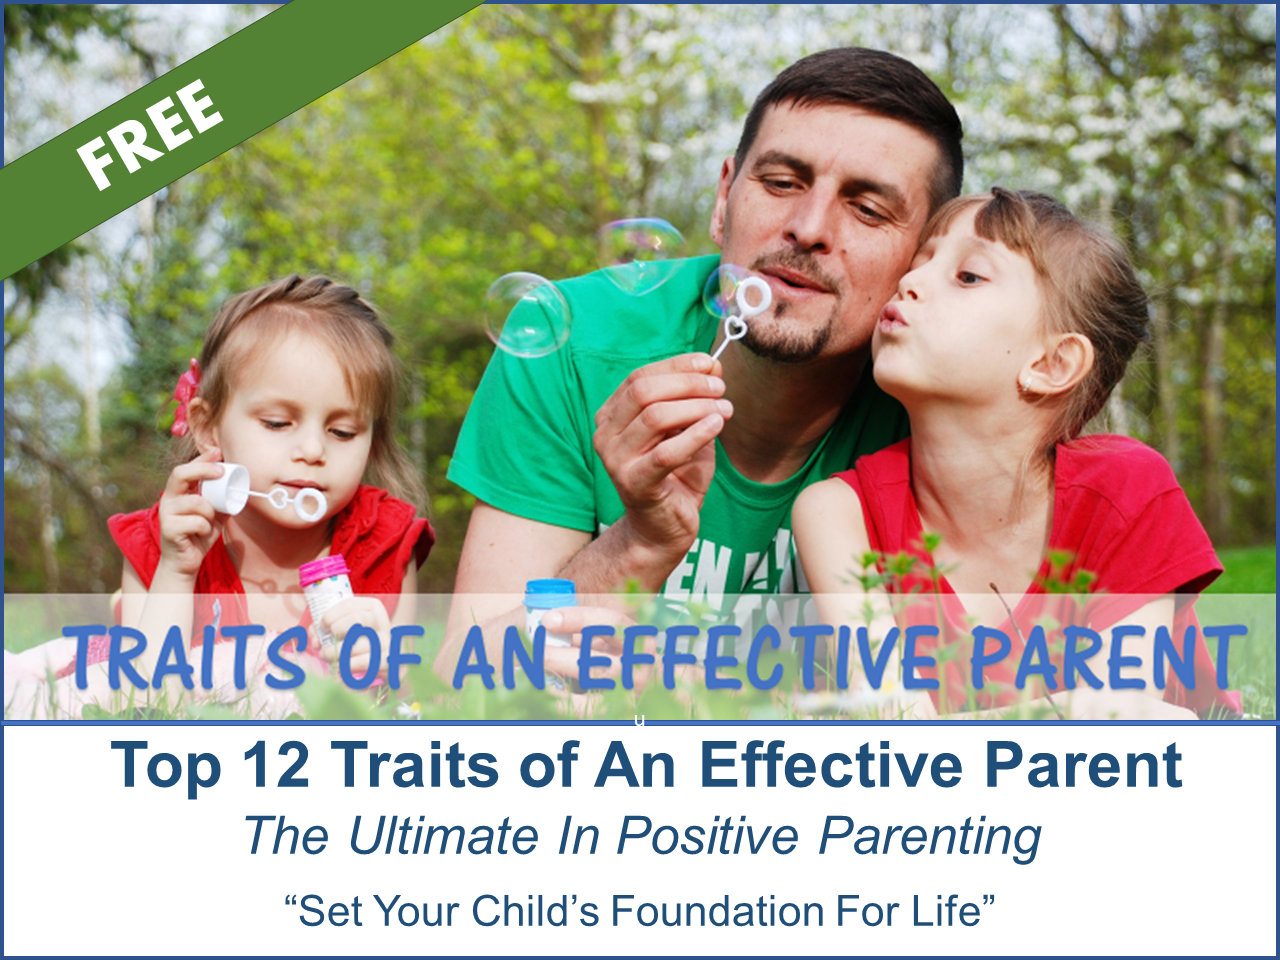 Free: Traits of An Effective Parent